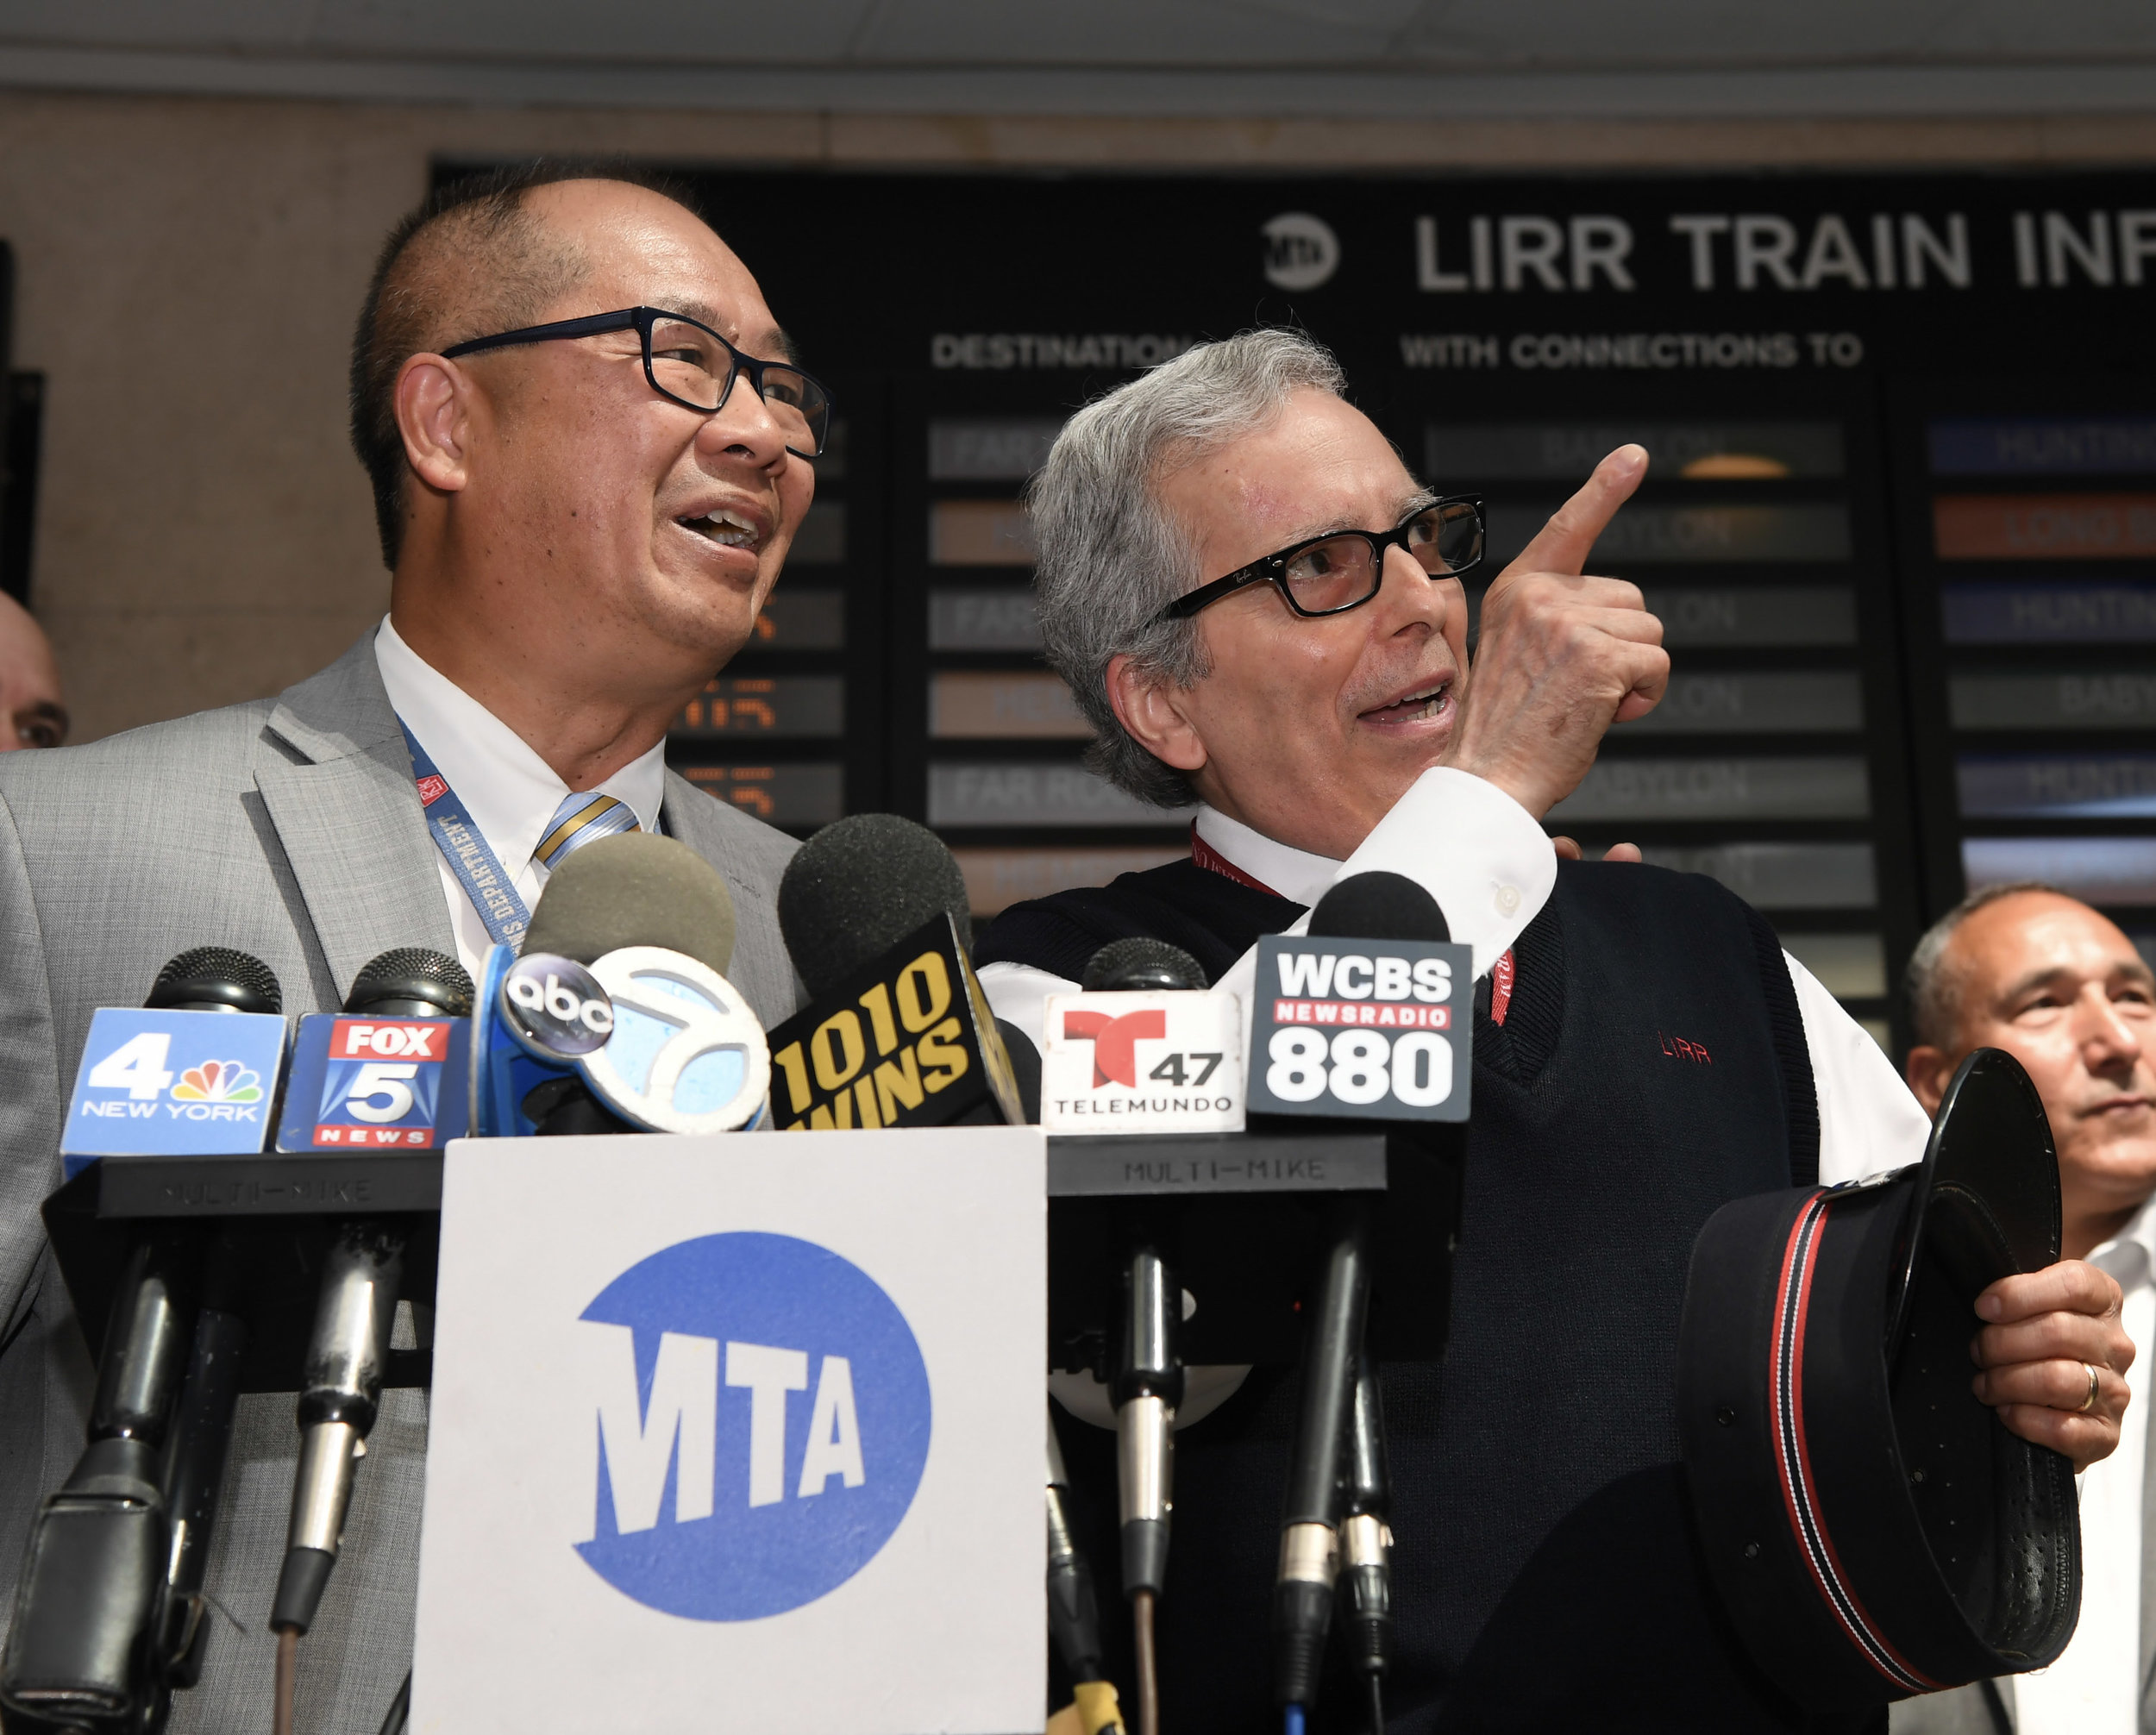 Conductor Jerry Savino (right) was honored by LIRR President Phil Eng at Atlantic Terminal in Brooklyn on Tuesday after Savino turned in $9,000 cash he had found aboard his train. Photos by Marc A. Hermann / MTA New York City Transit.